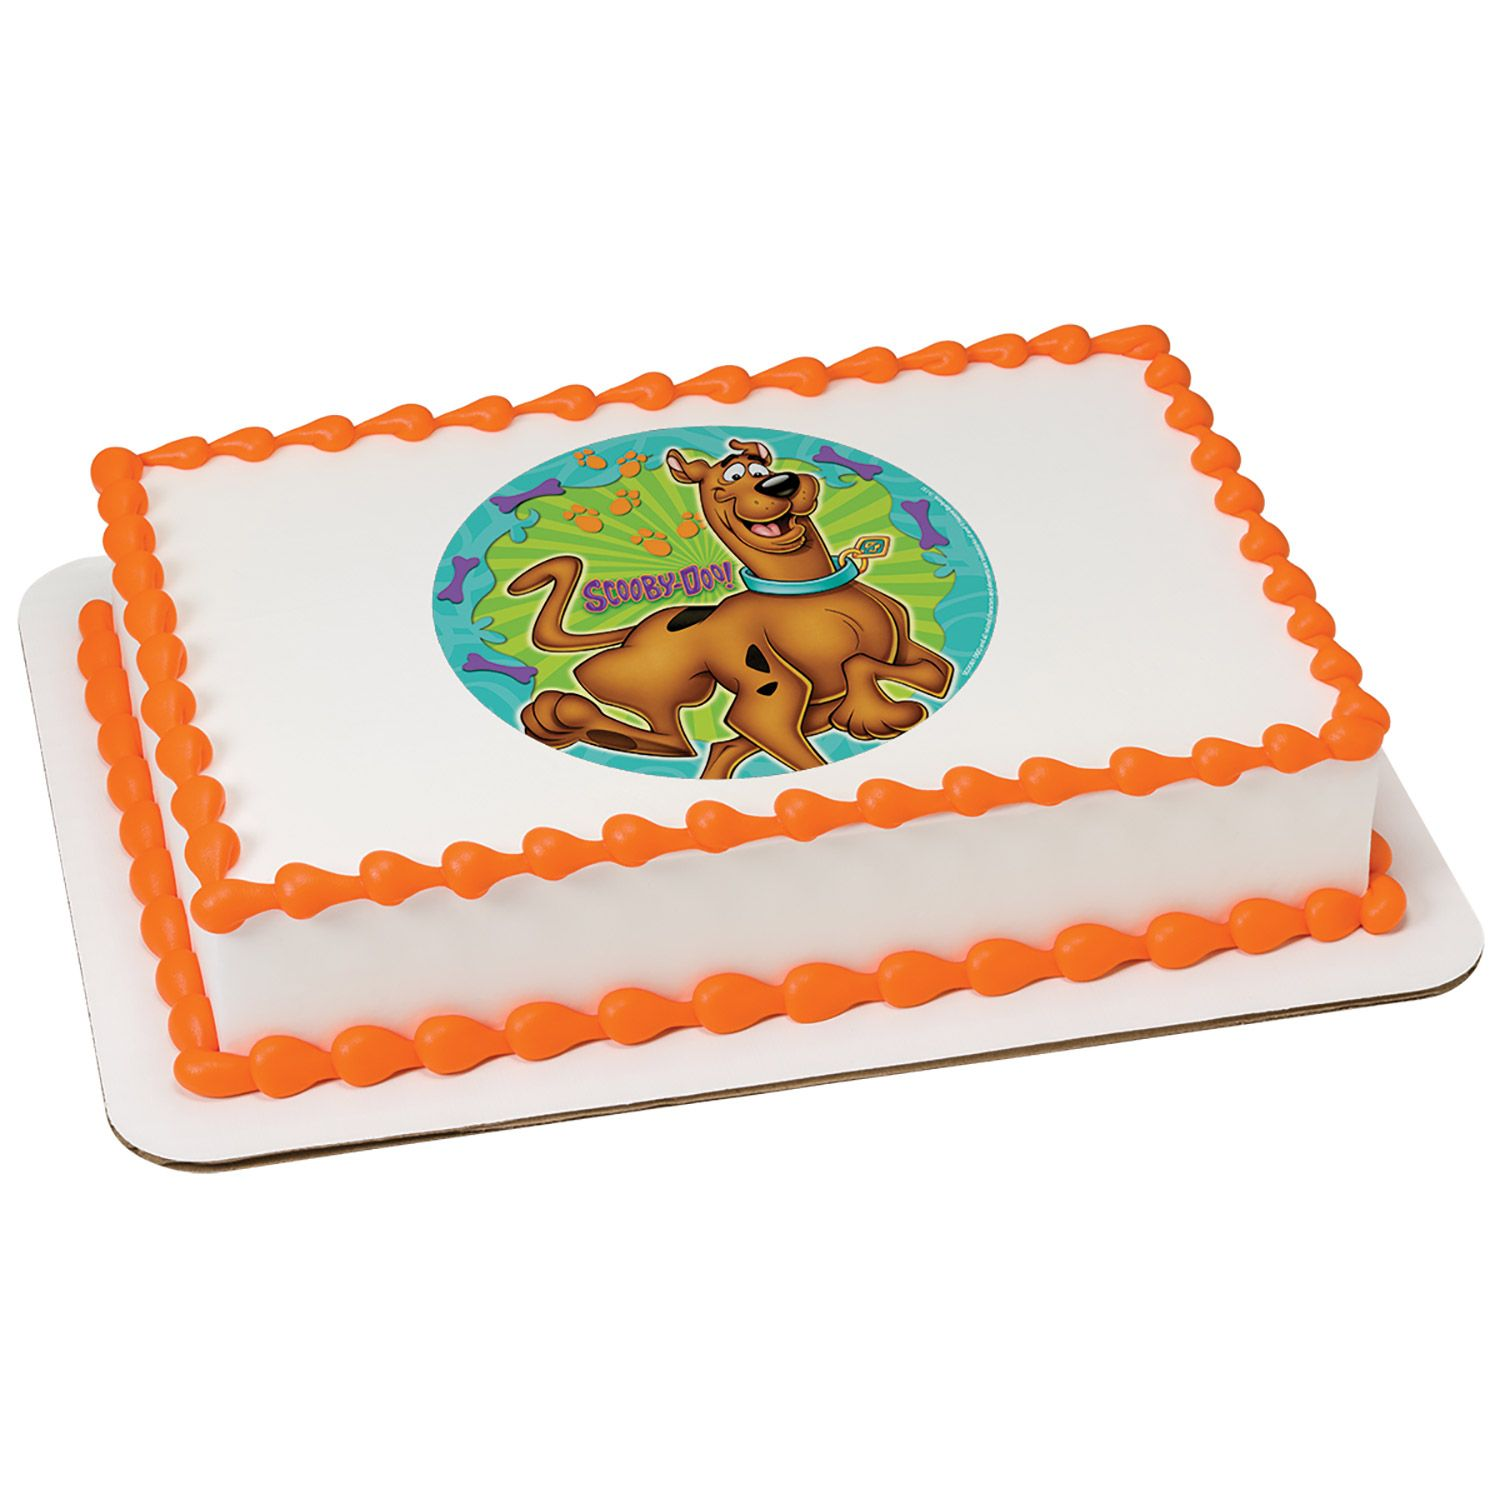 Scooby Doo Quarter Sheet Edible Cake Topper (Each) BB37516QTR